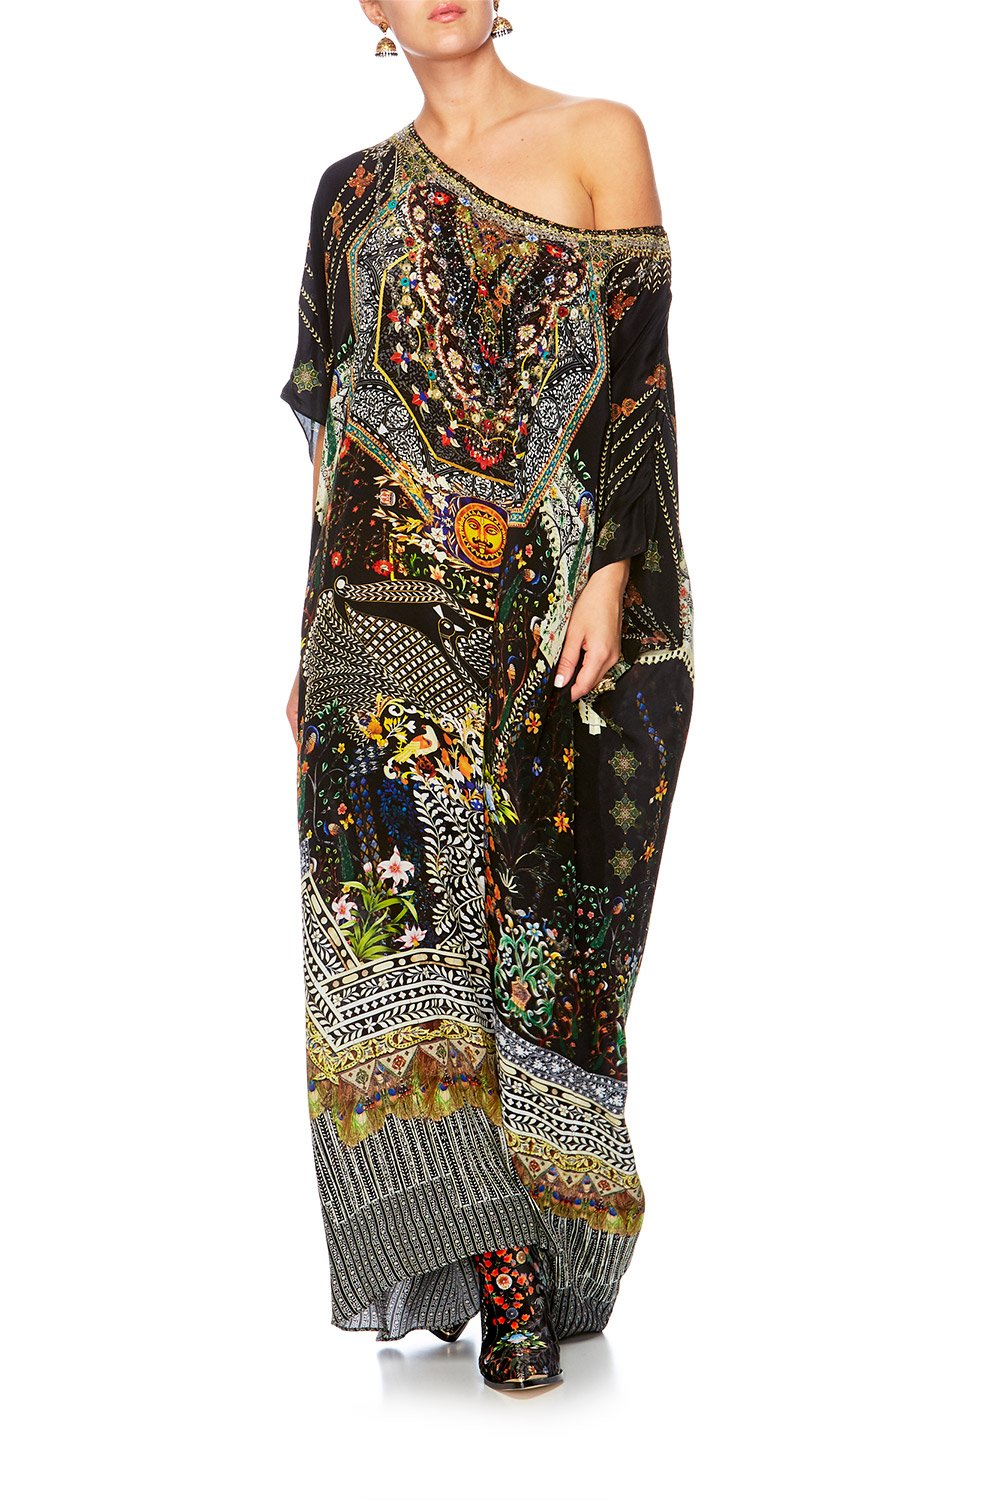 BEHIND CLOSED DOORS ROUND NECK KAFTAN